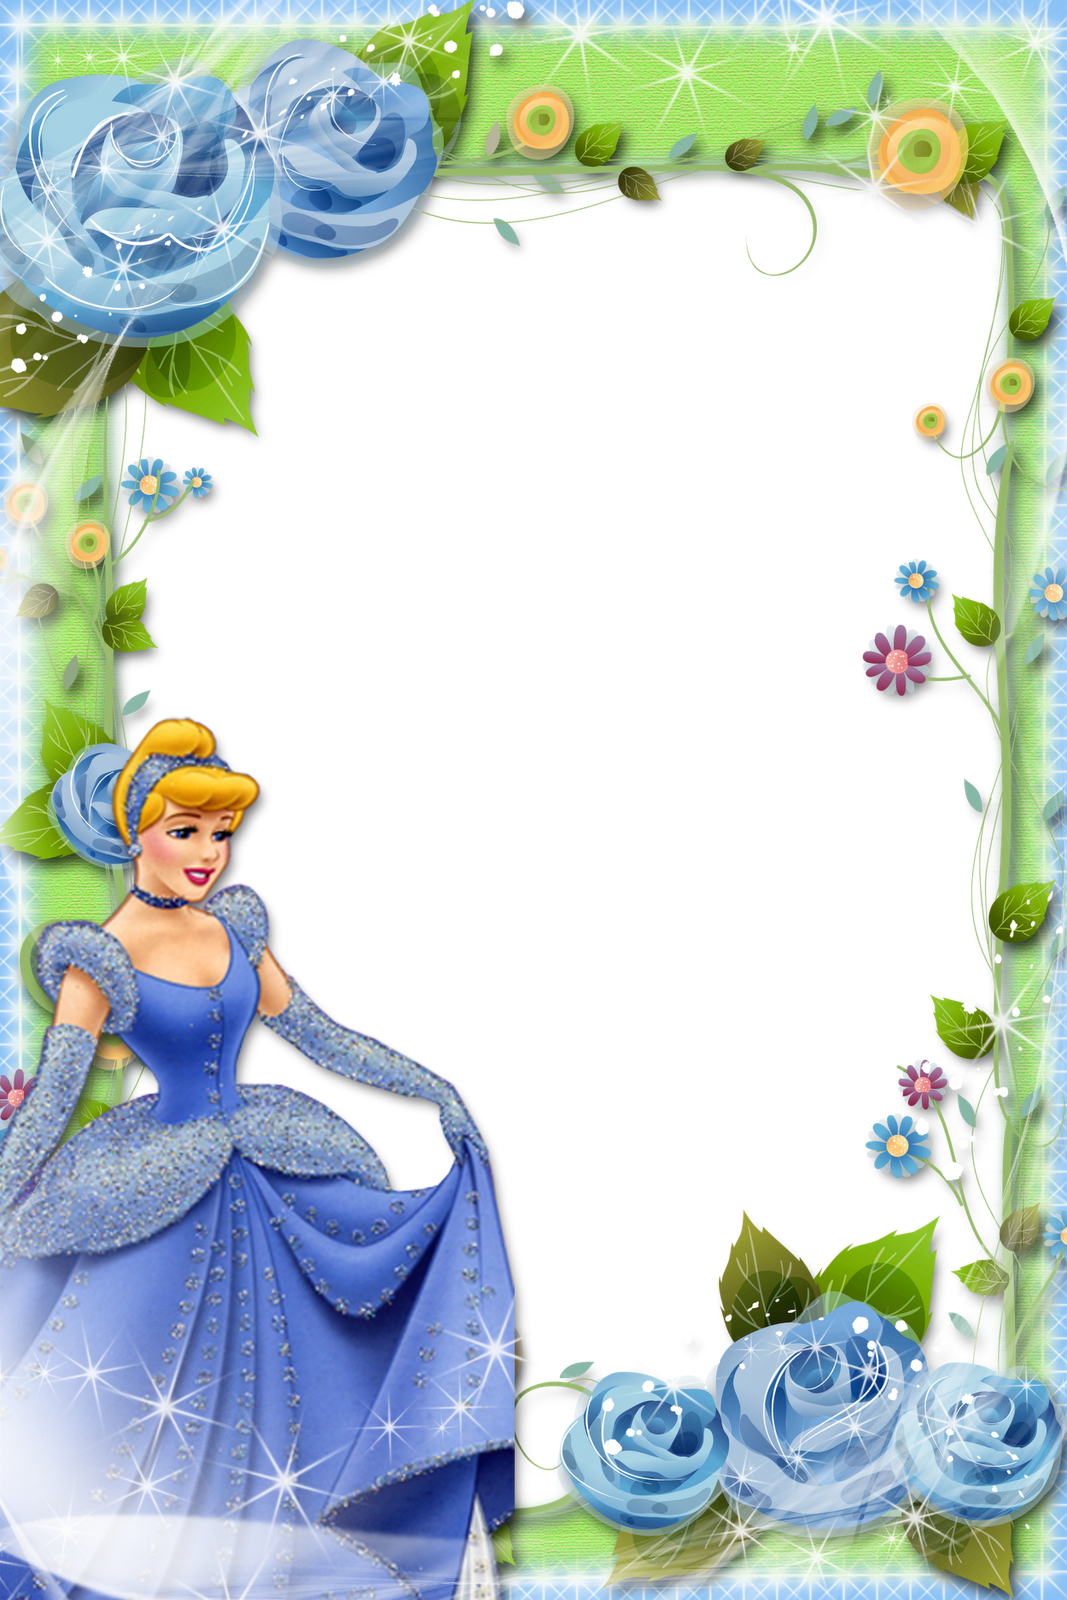 Disney Princess Frames And Borders Png | www.pixshark.com ...